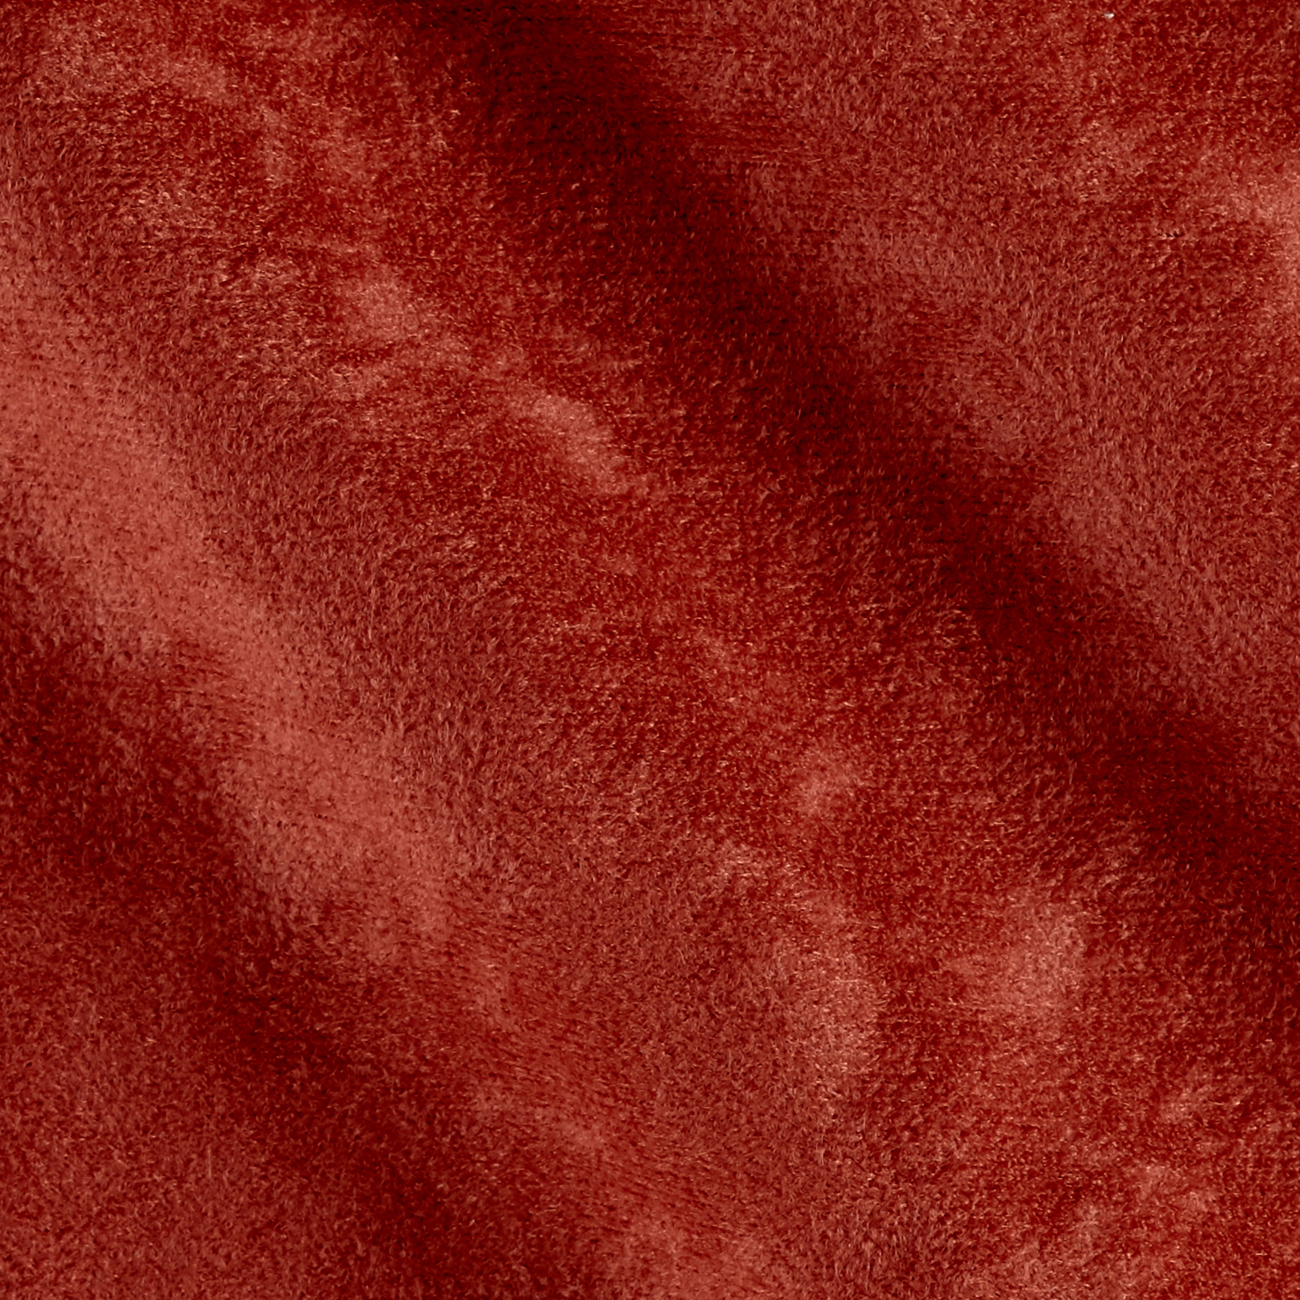 Soft Suede Rust Fabric by Plastex in USA